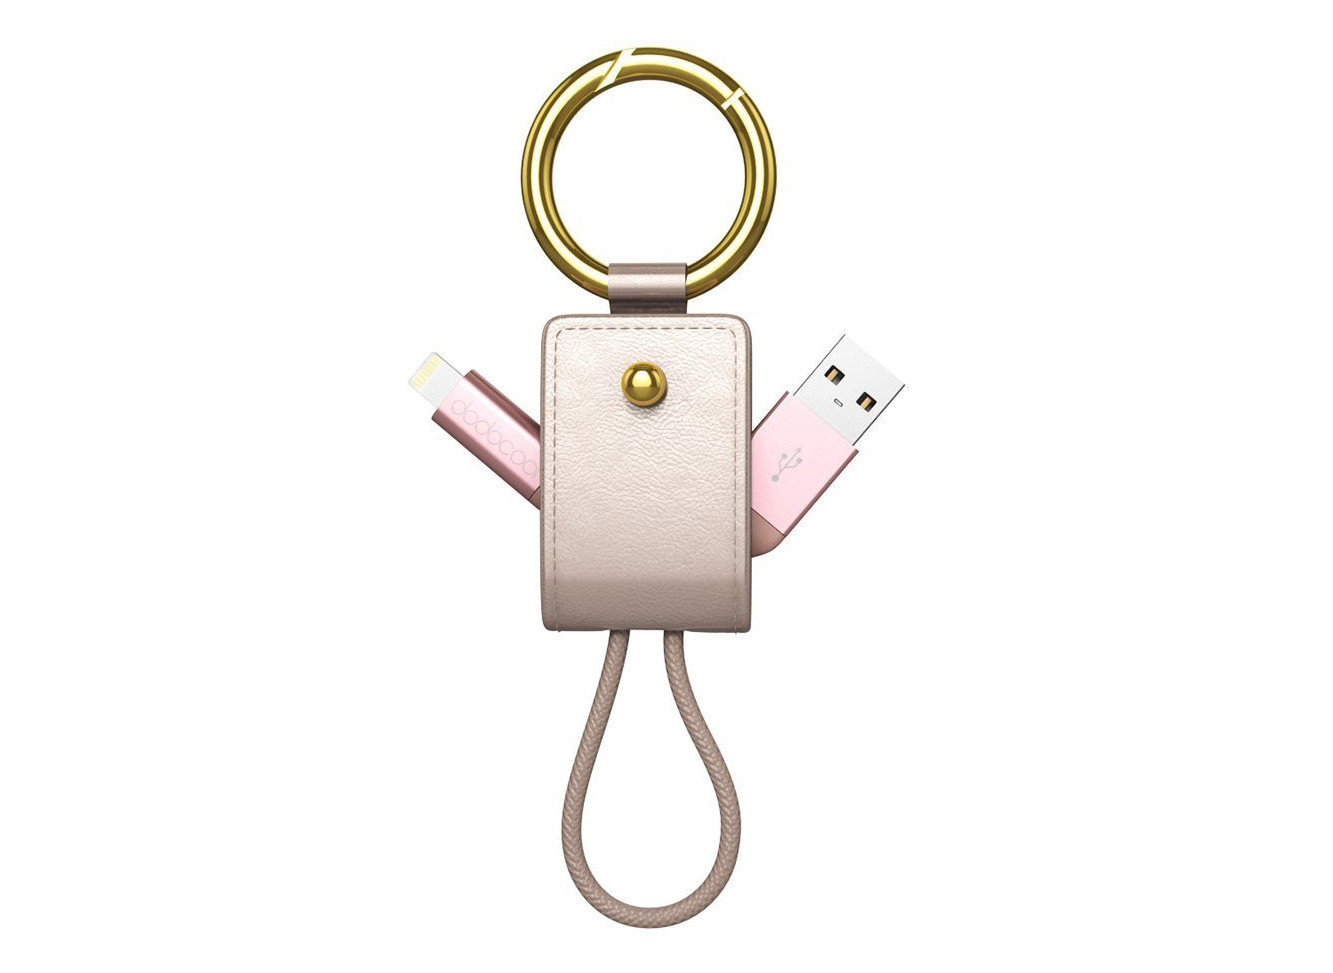 Travel Shop pink fashion accessory product design product keychain key